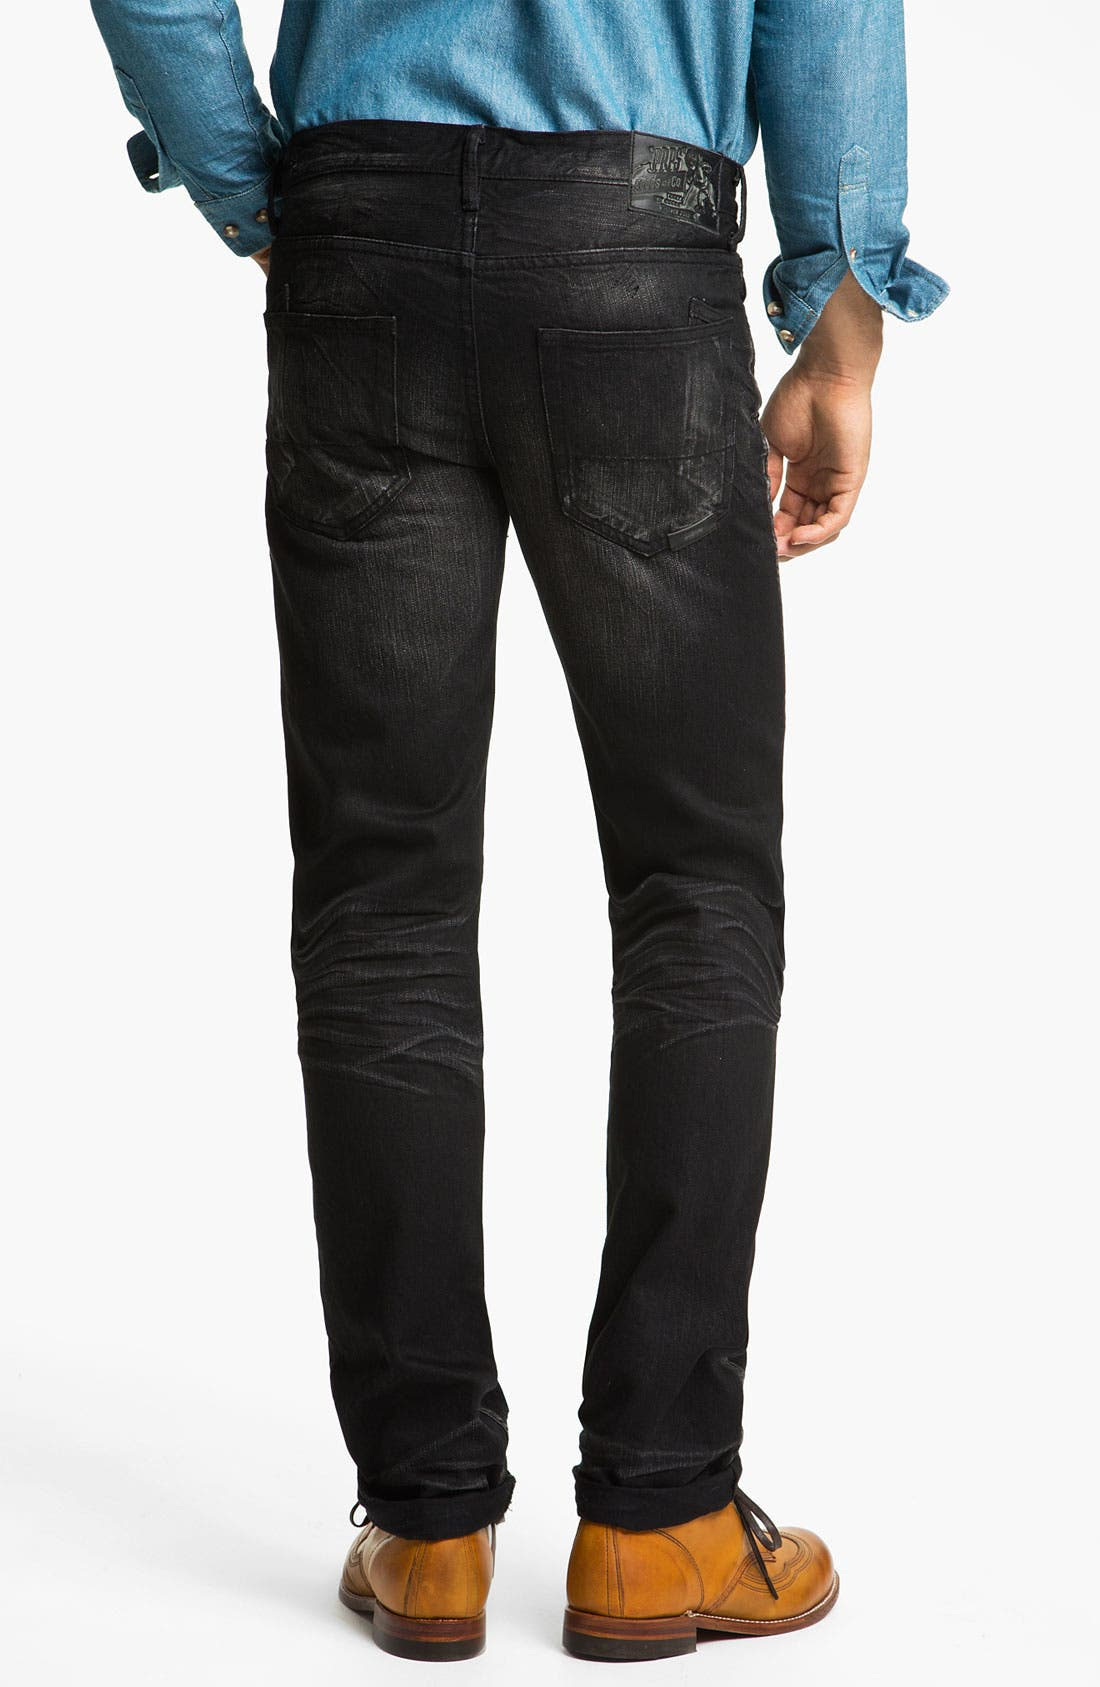 Alternate Image 1 Selected - PRPS 'Rambler' Slim Fit Jeans (Junko's Summit)